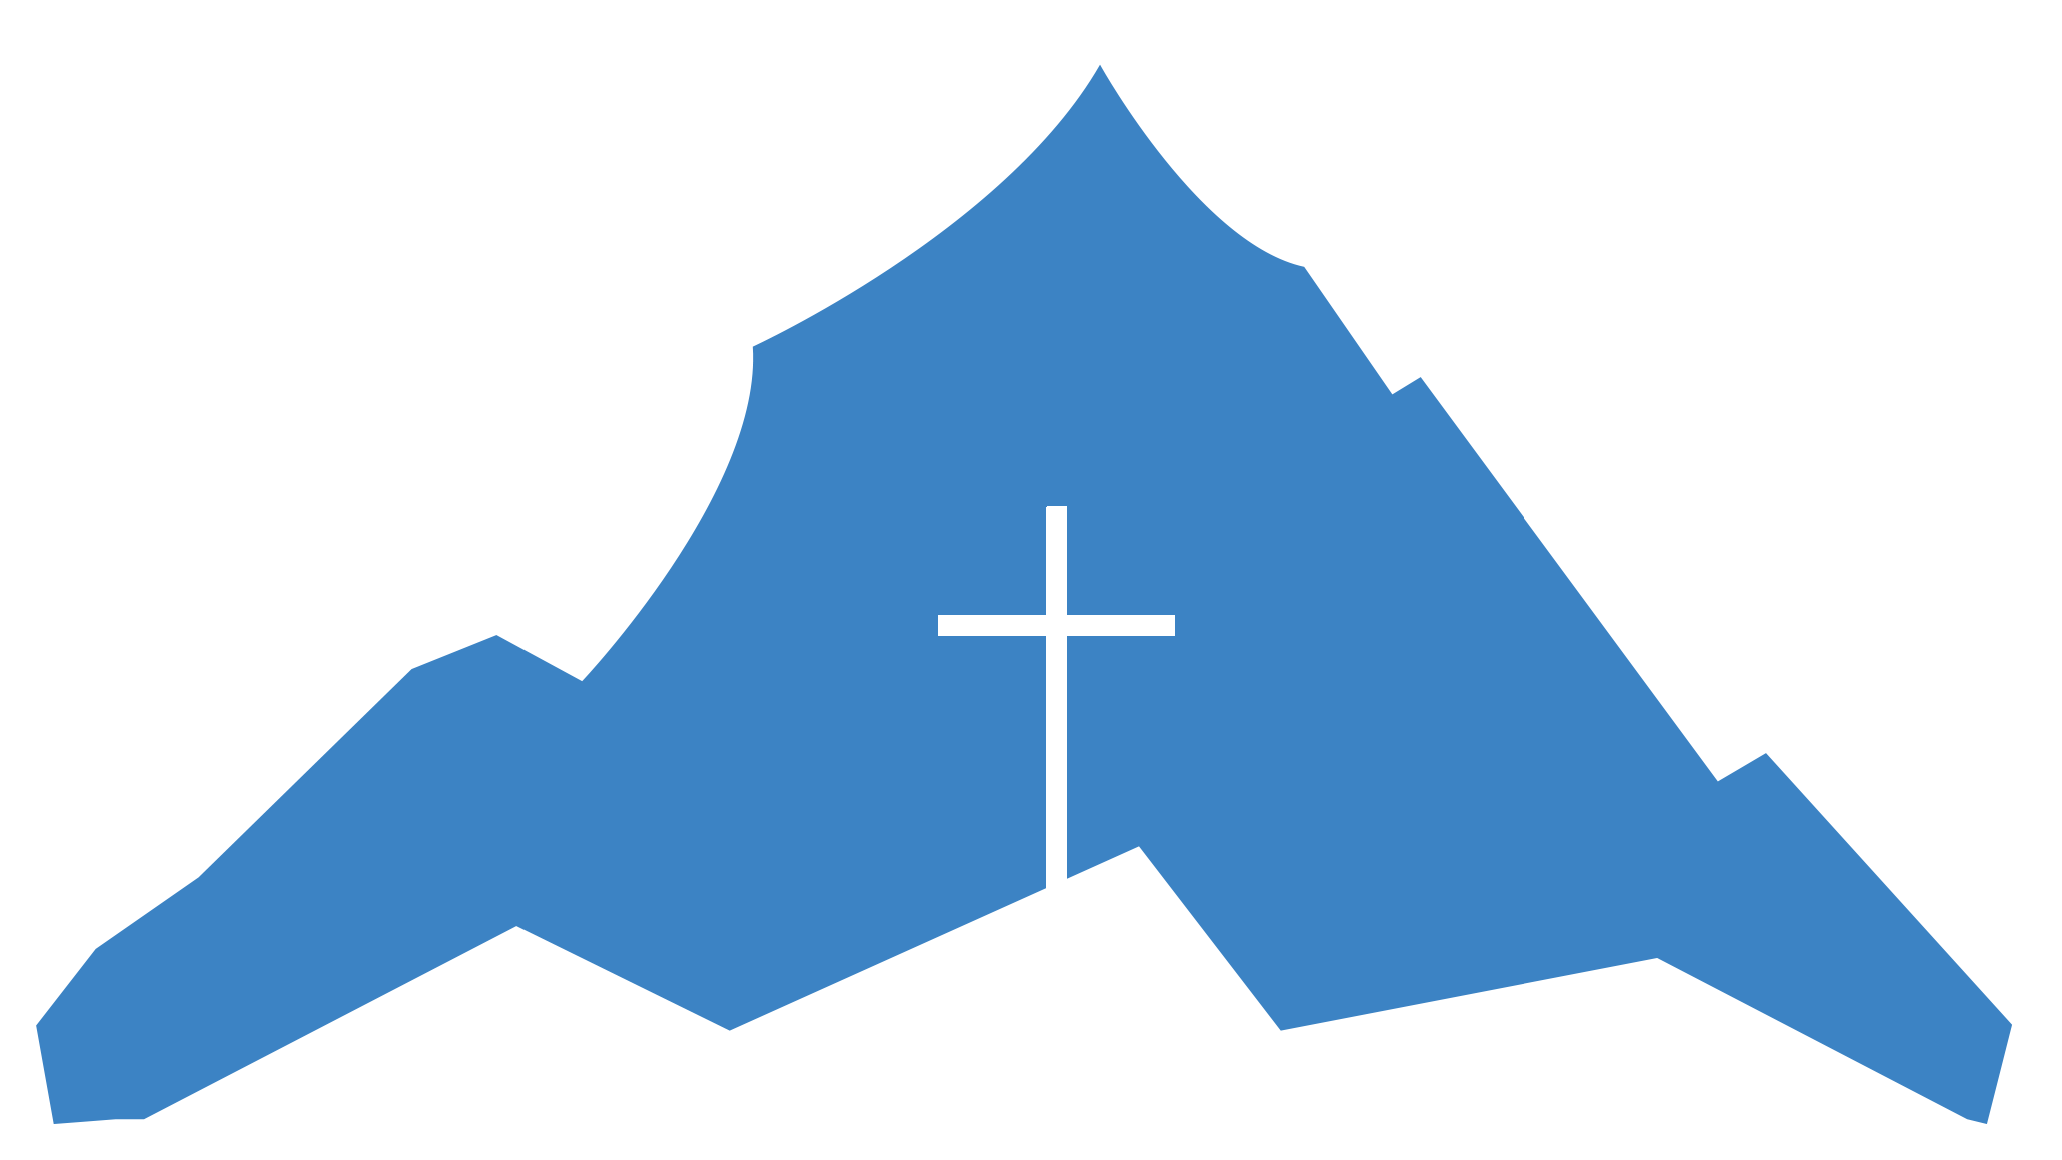 Summit Fellowship Alternate Logo- Blue Mountain with White Cross